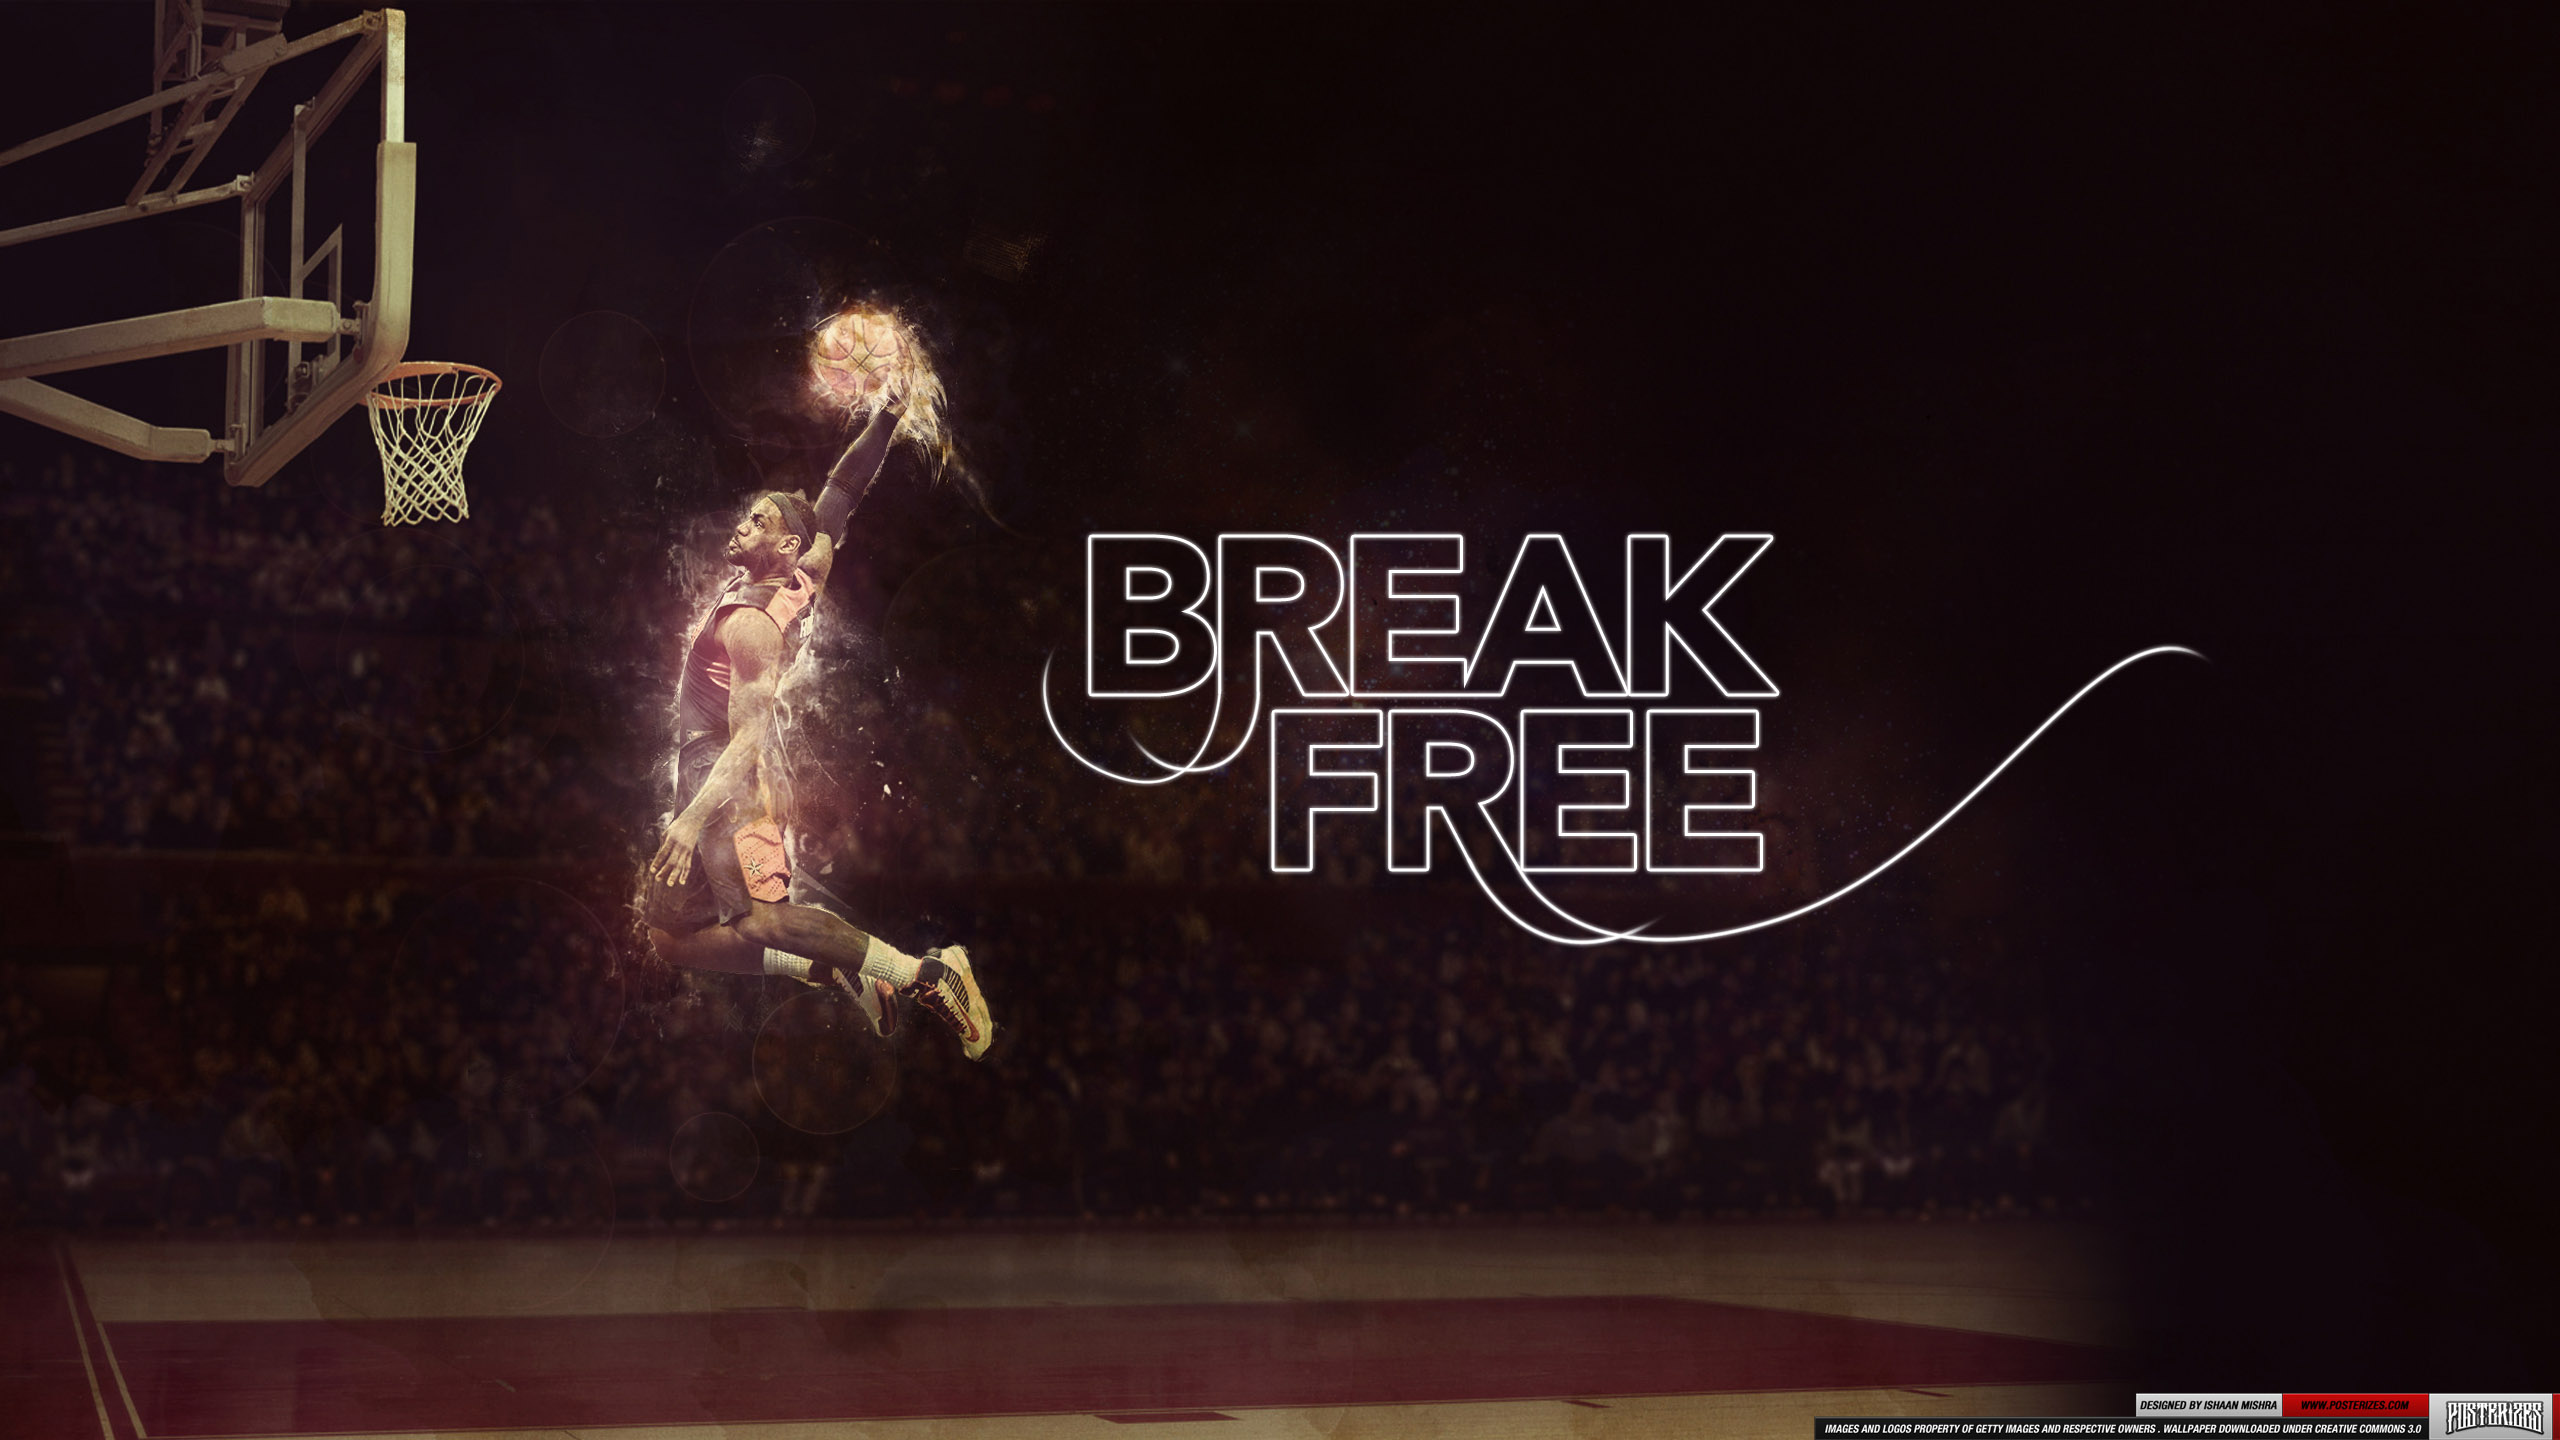 dwyane wade wallpaper free download